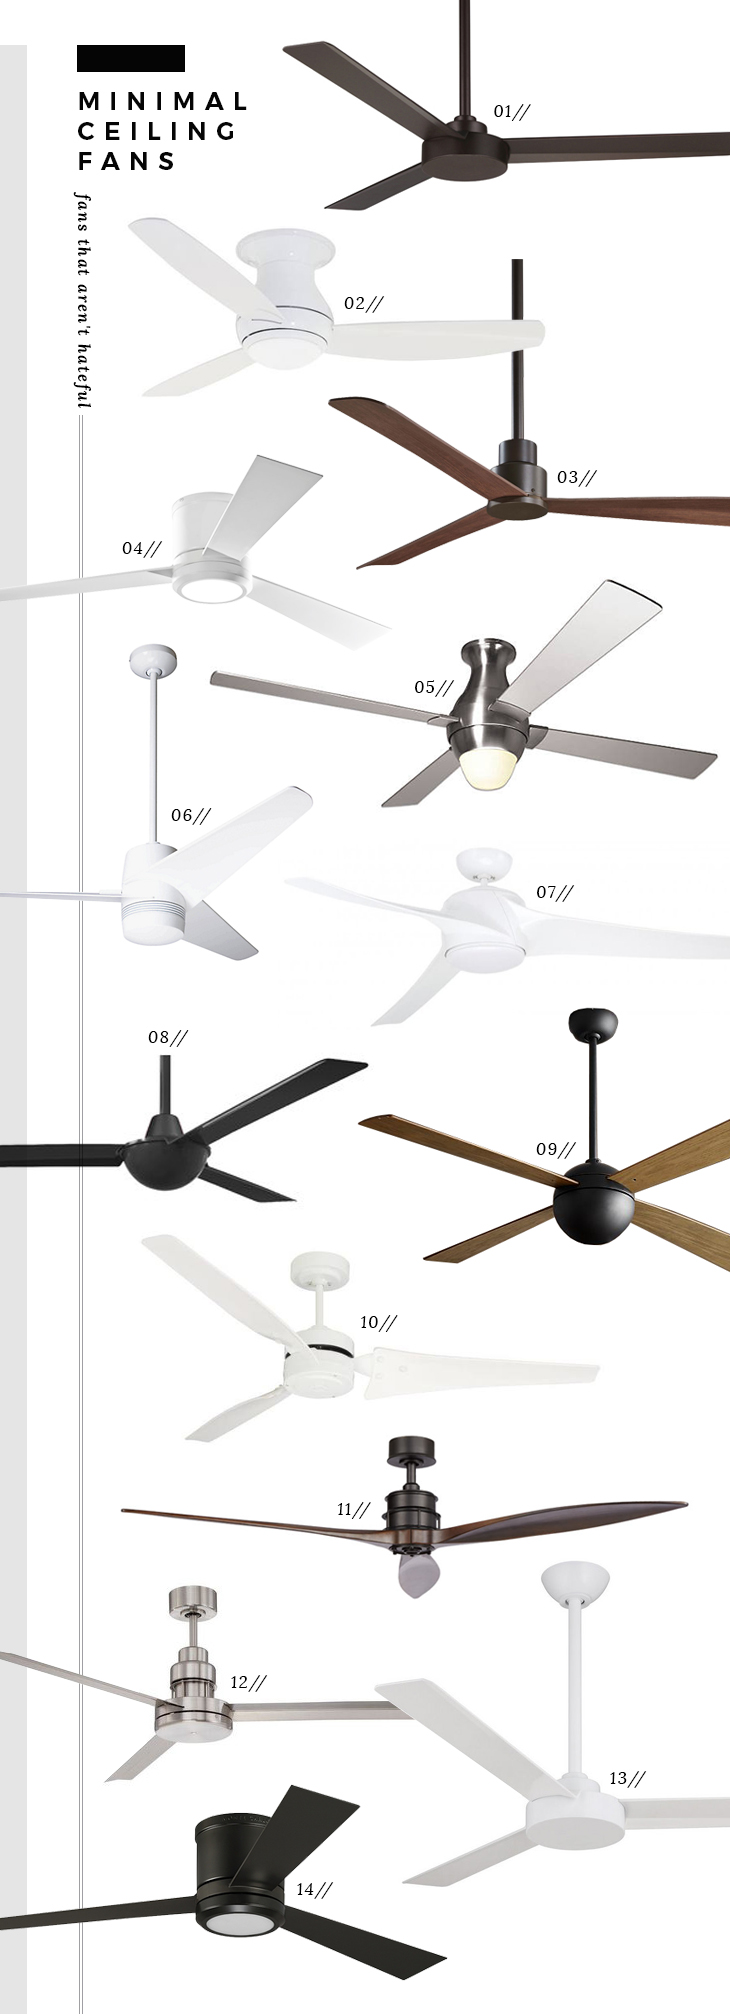 images on shores fans ideas bronze fan pinterest the ceiling feissmontecarlo outdoor outdoors roman best